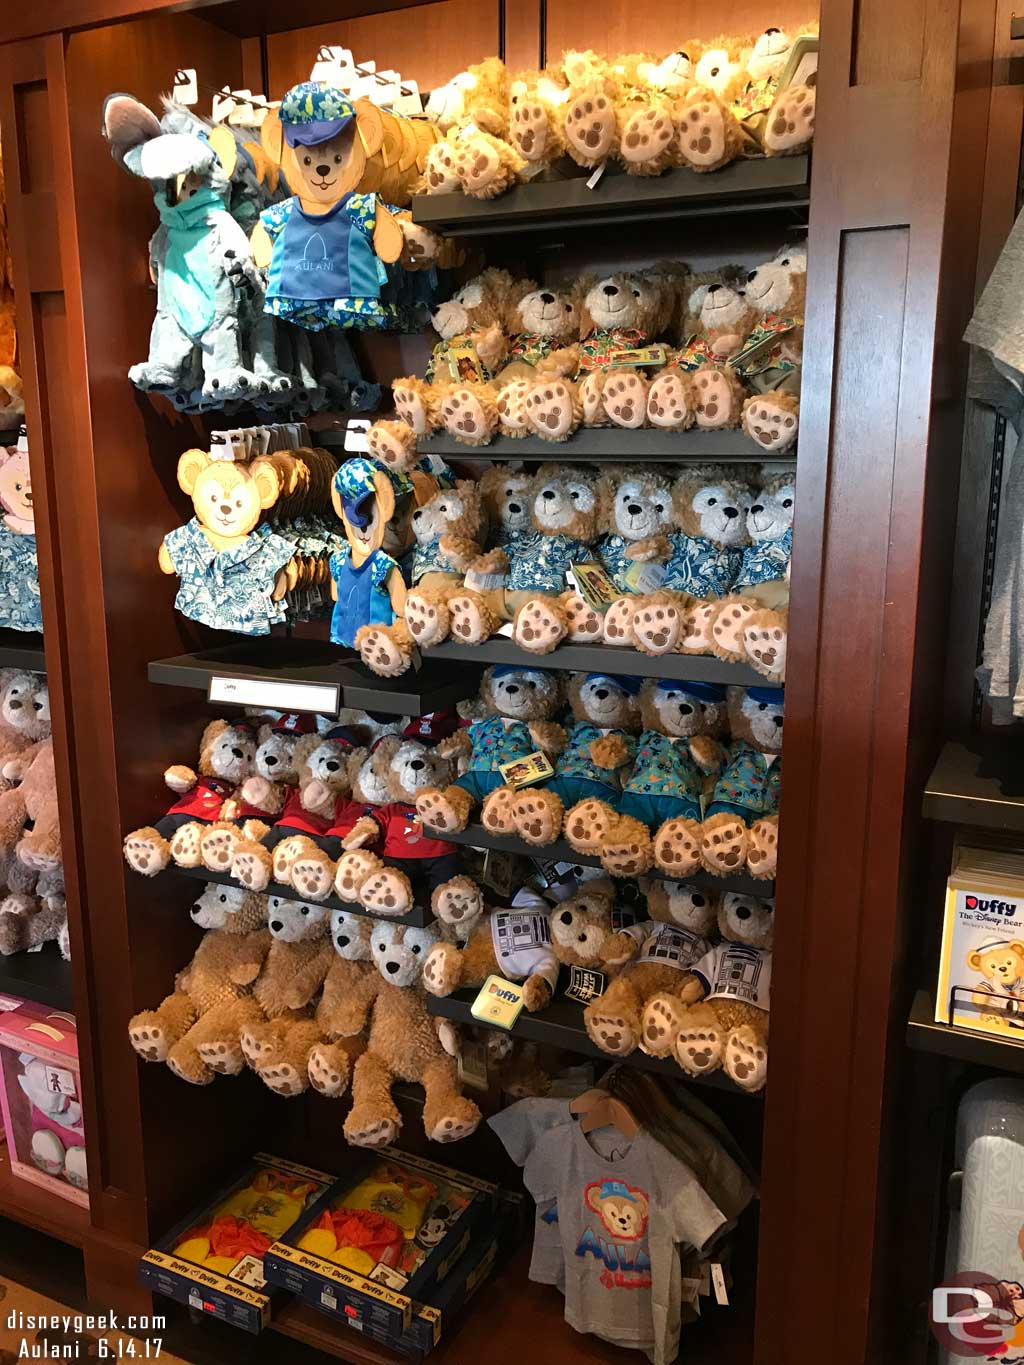 Aulani - Duffy Merchandise